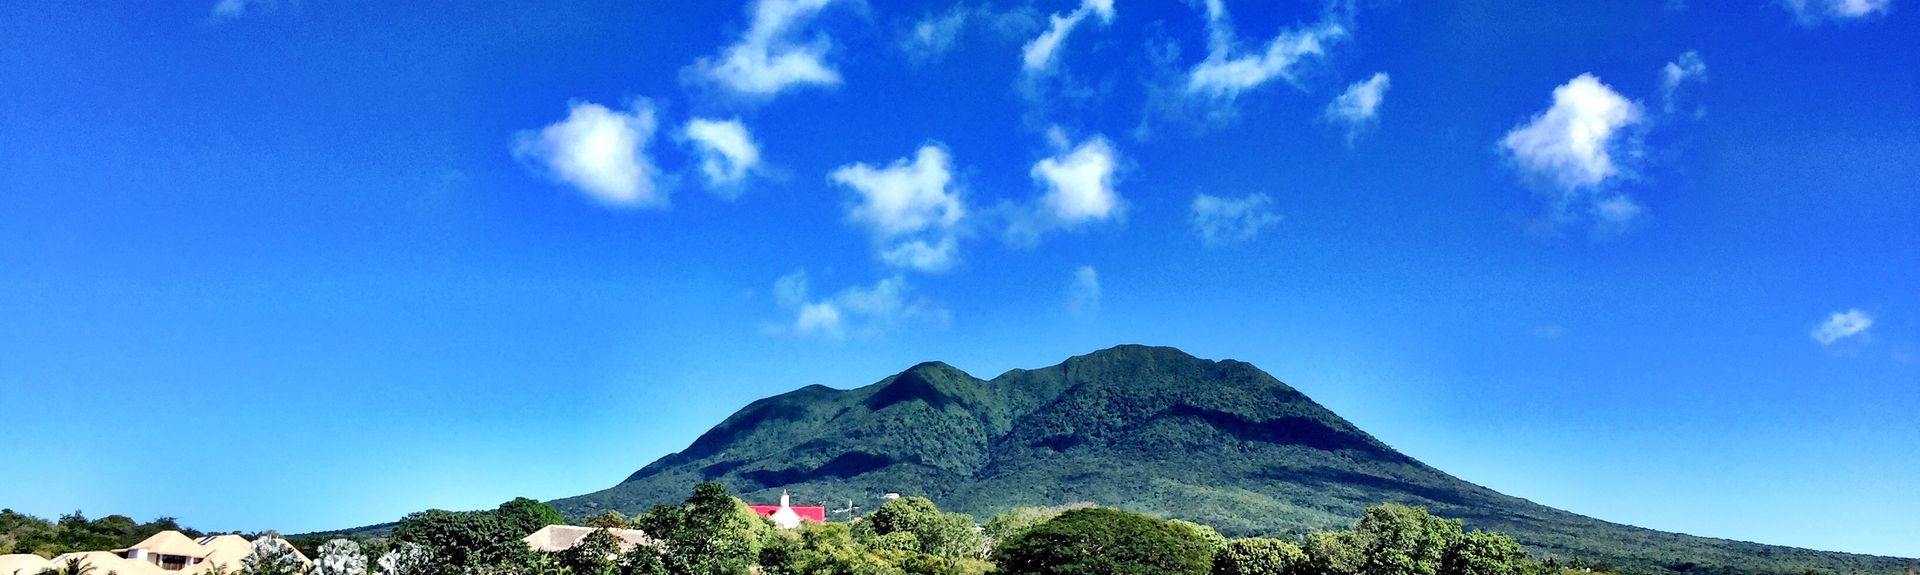 Mannings, Saint Kitts and Nevis